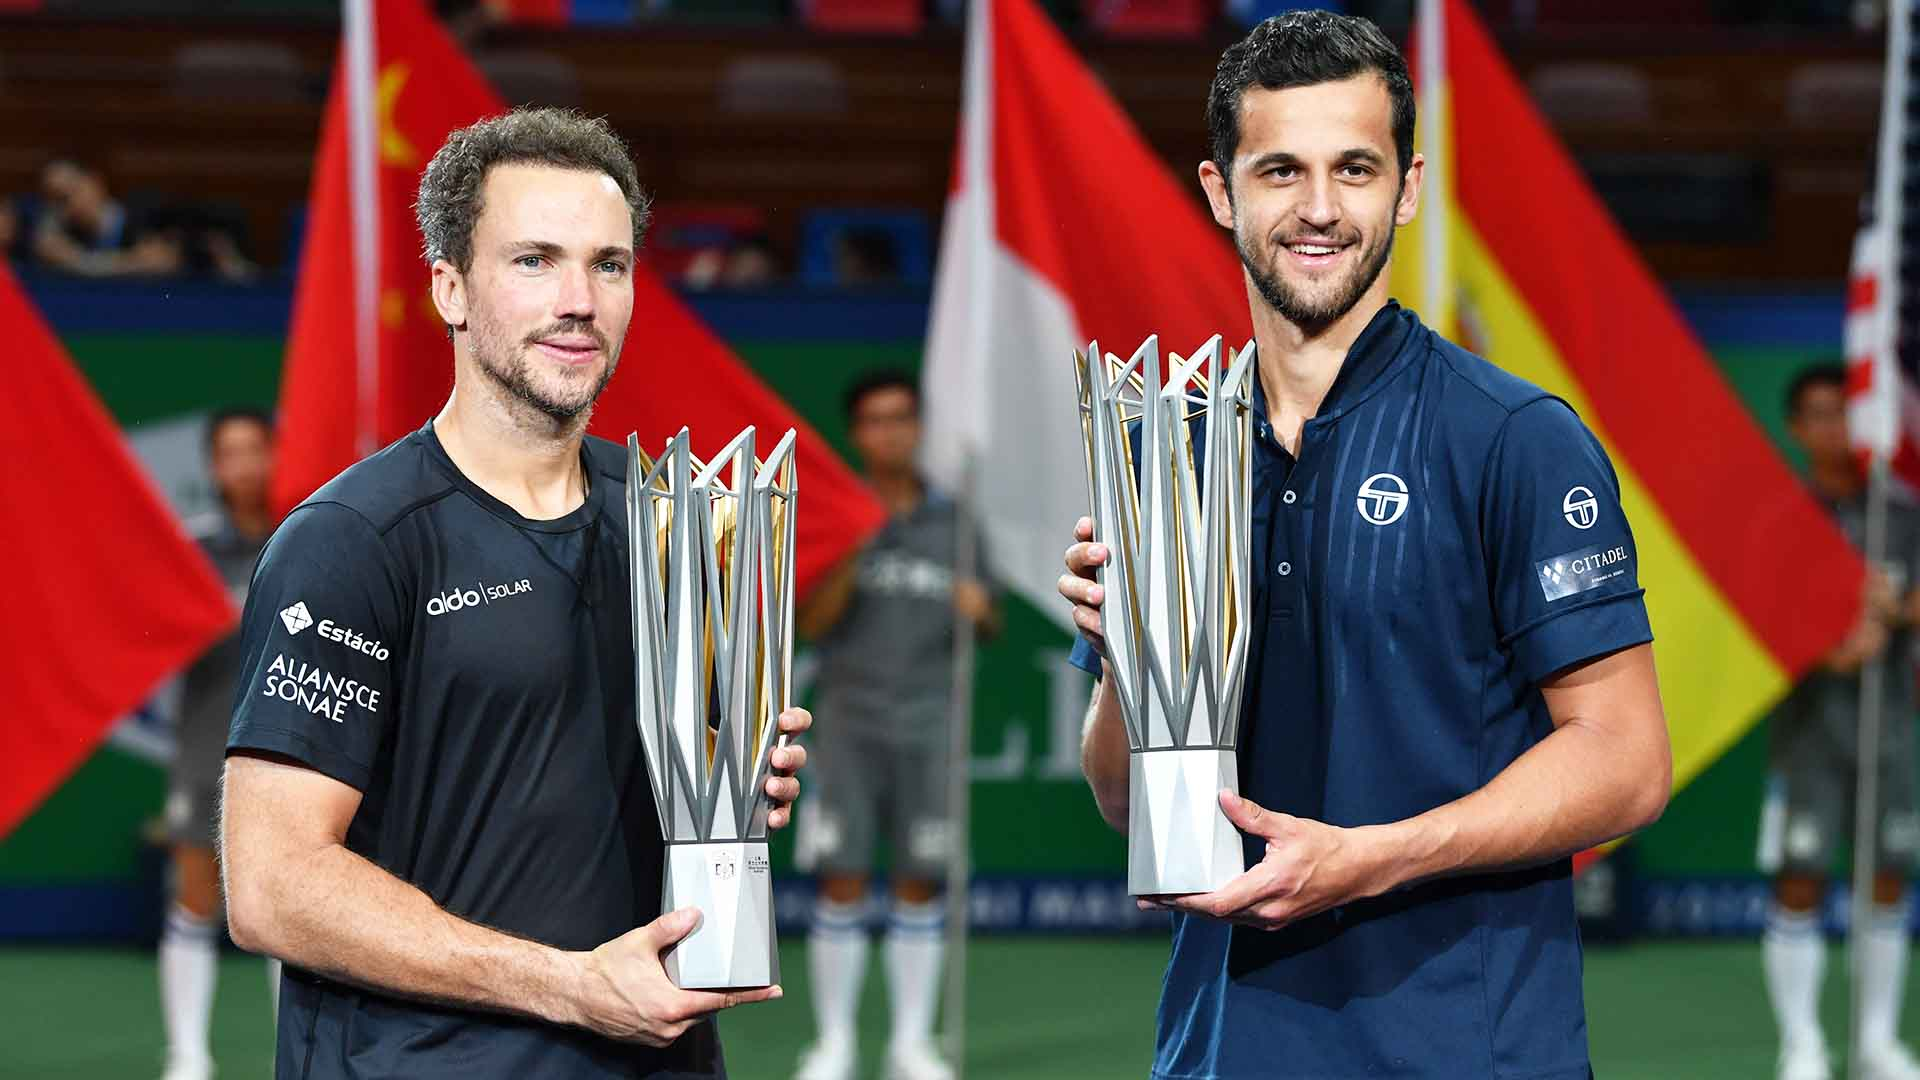 Bruno Soares and Mate Pavic began their partnership at the Fever-Tree Championships in June.